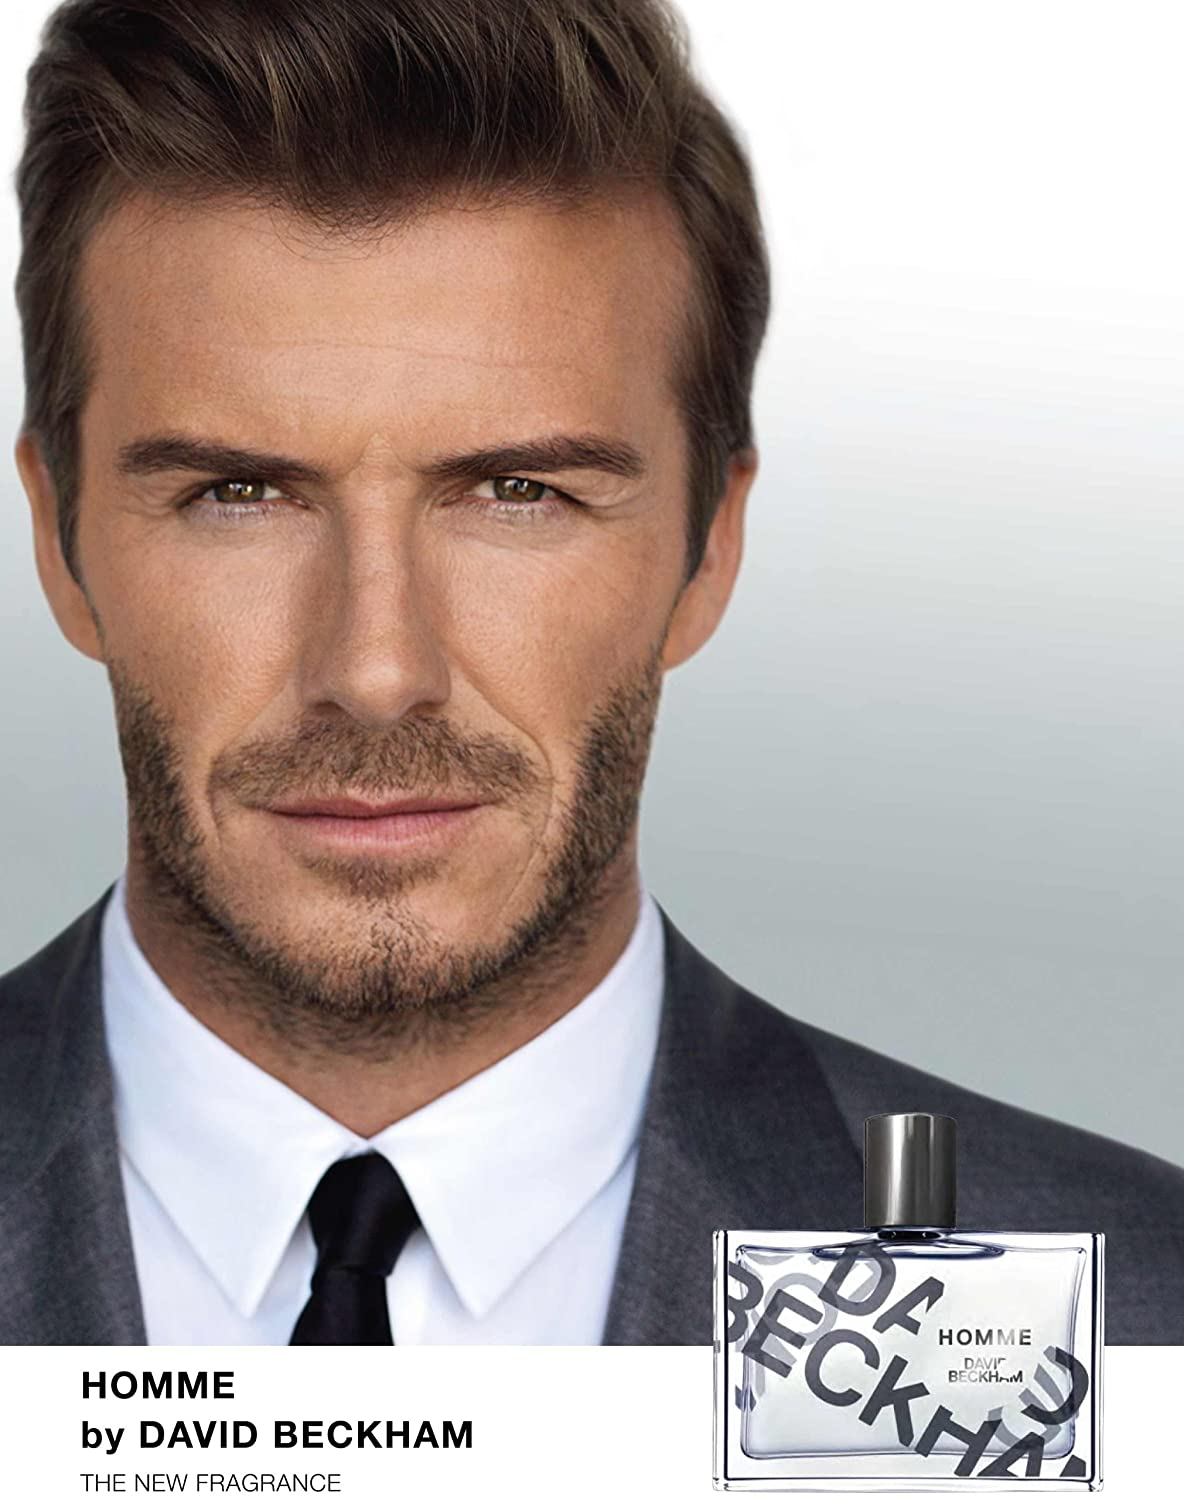 David beckham hair gel om hair - David beckham ...